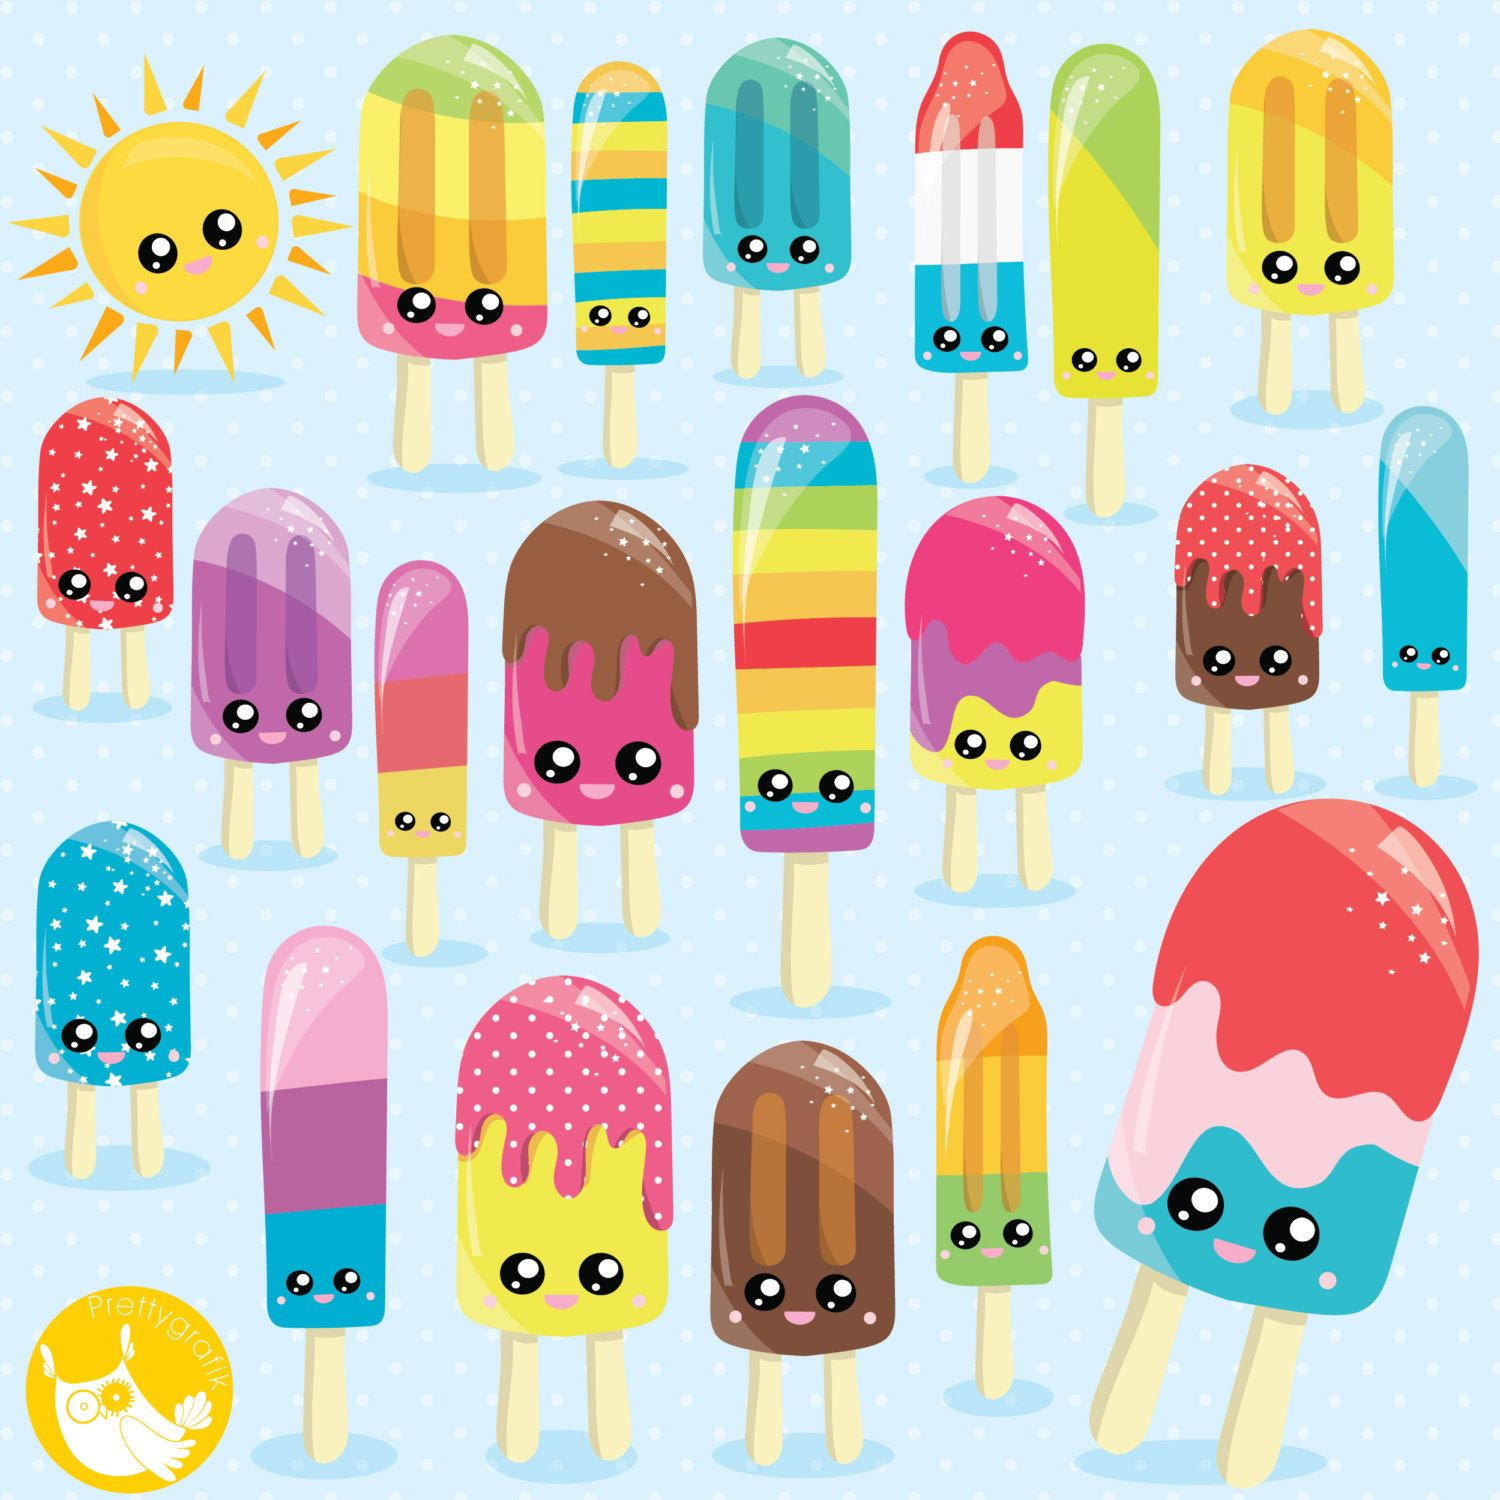 Ice clipart popsicle, Ice popsicle Transparent FREE for download on  WebStockReview 2020